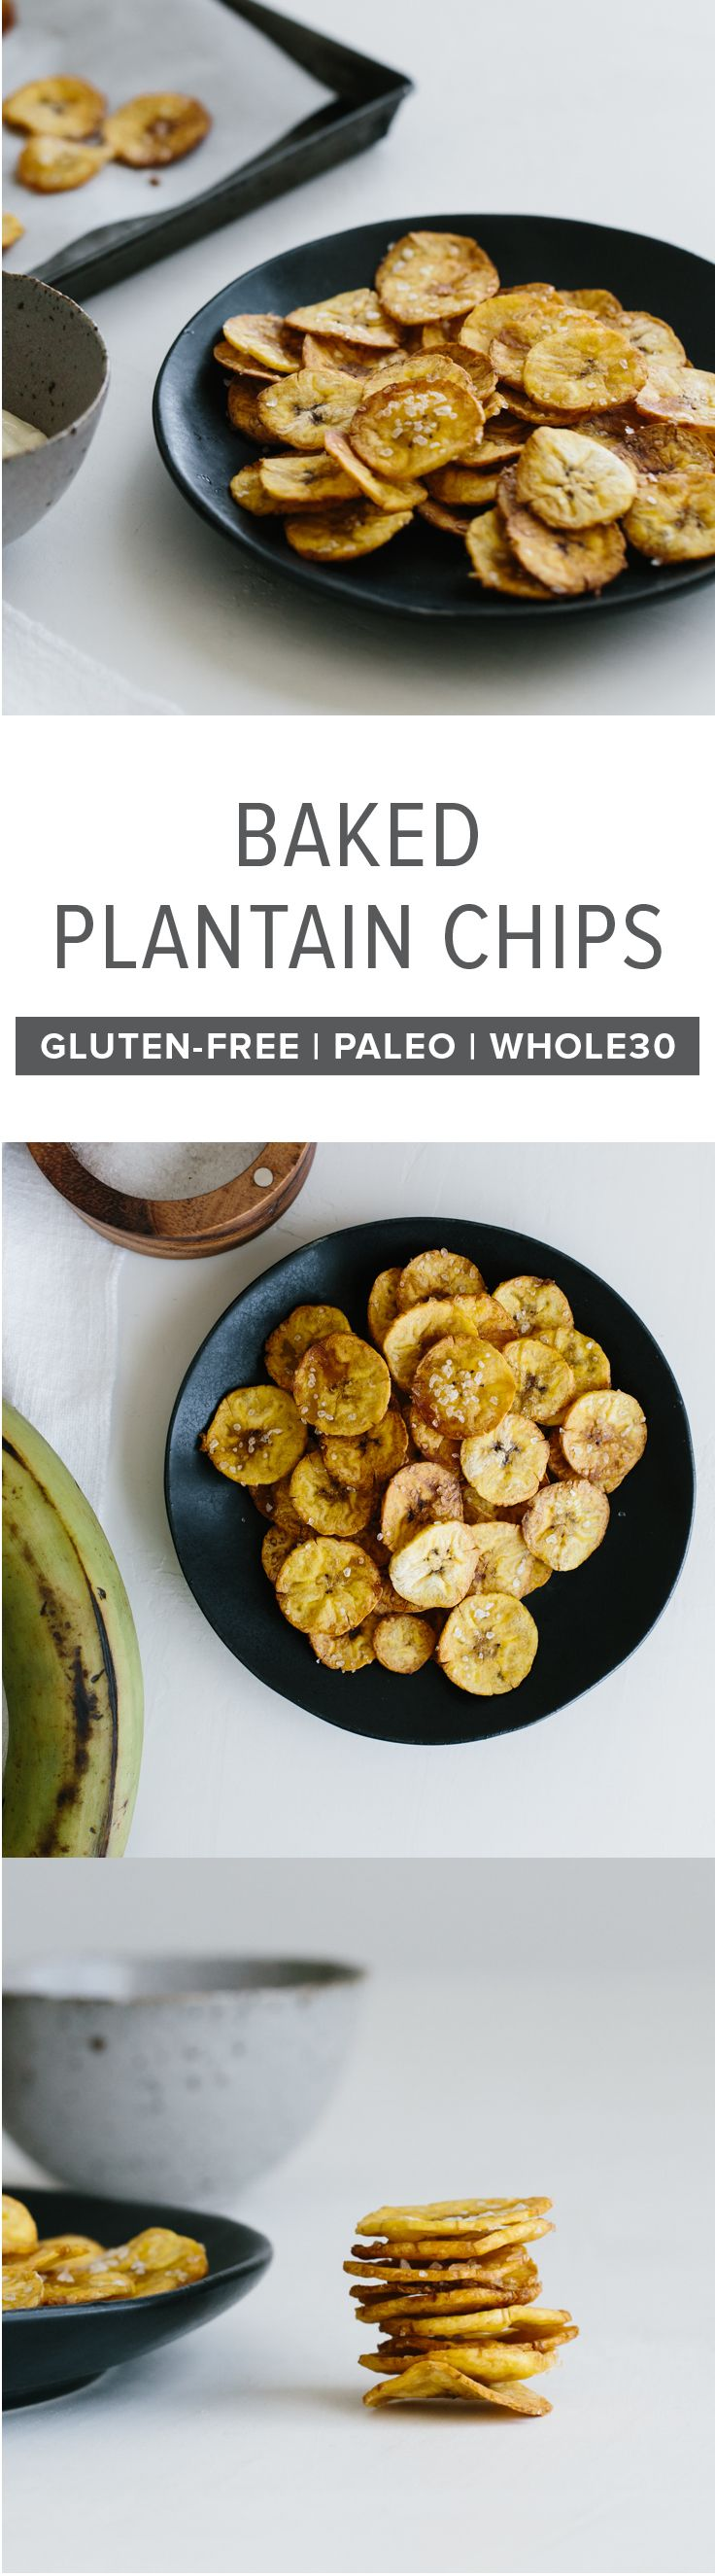 gluten free paleo whole30 These baked plantain chips are a healthy